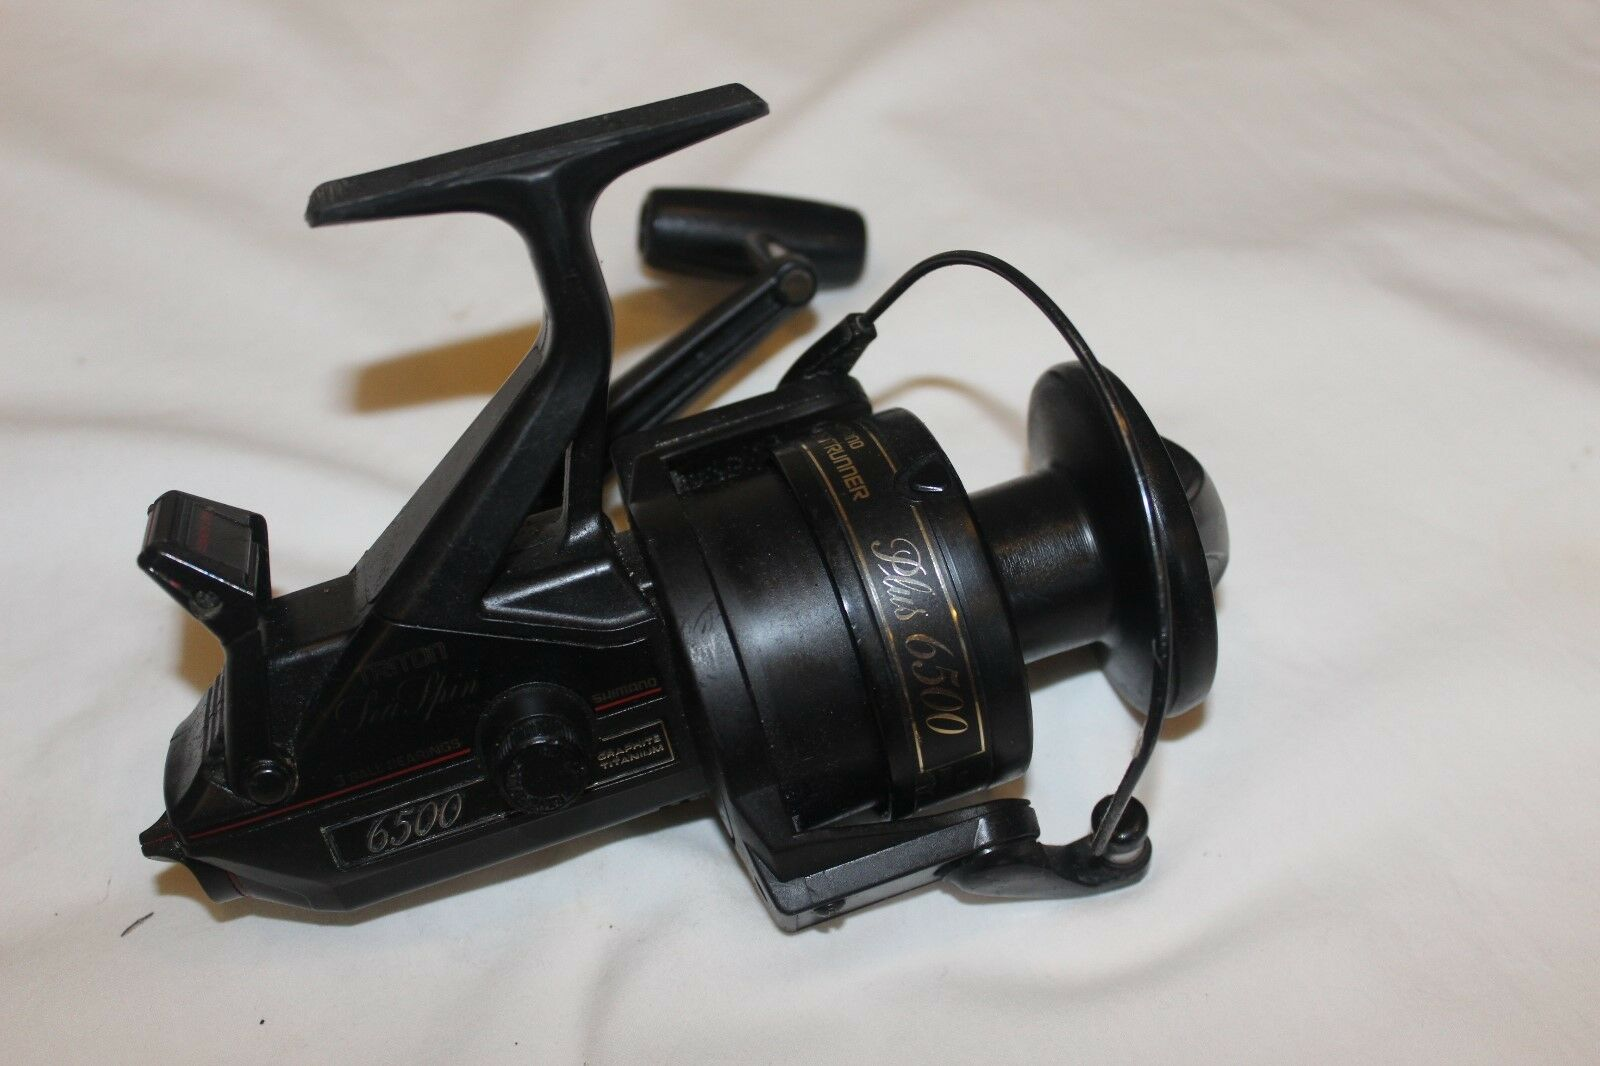 Shimano Baitrunner 6500-Made in Japan-nr-1164